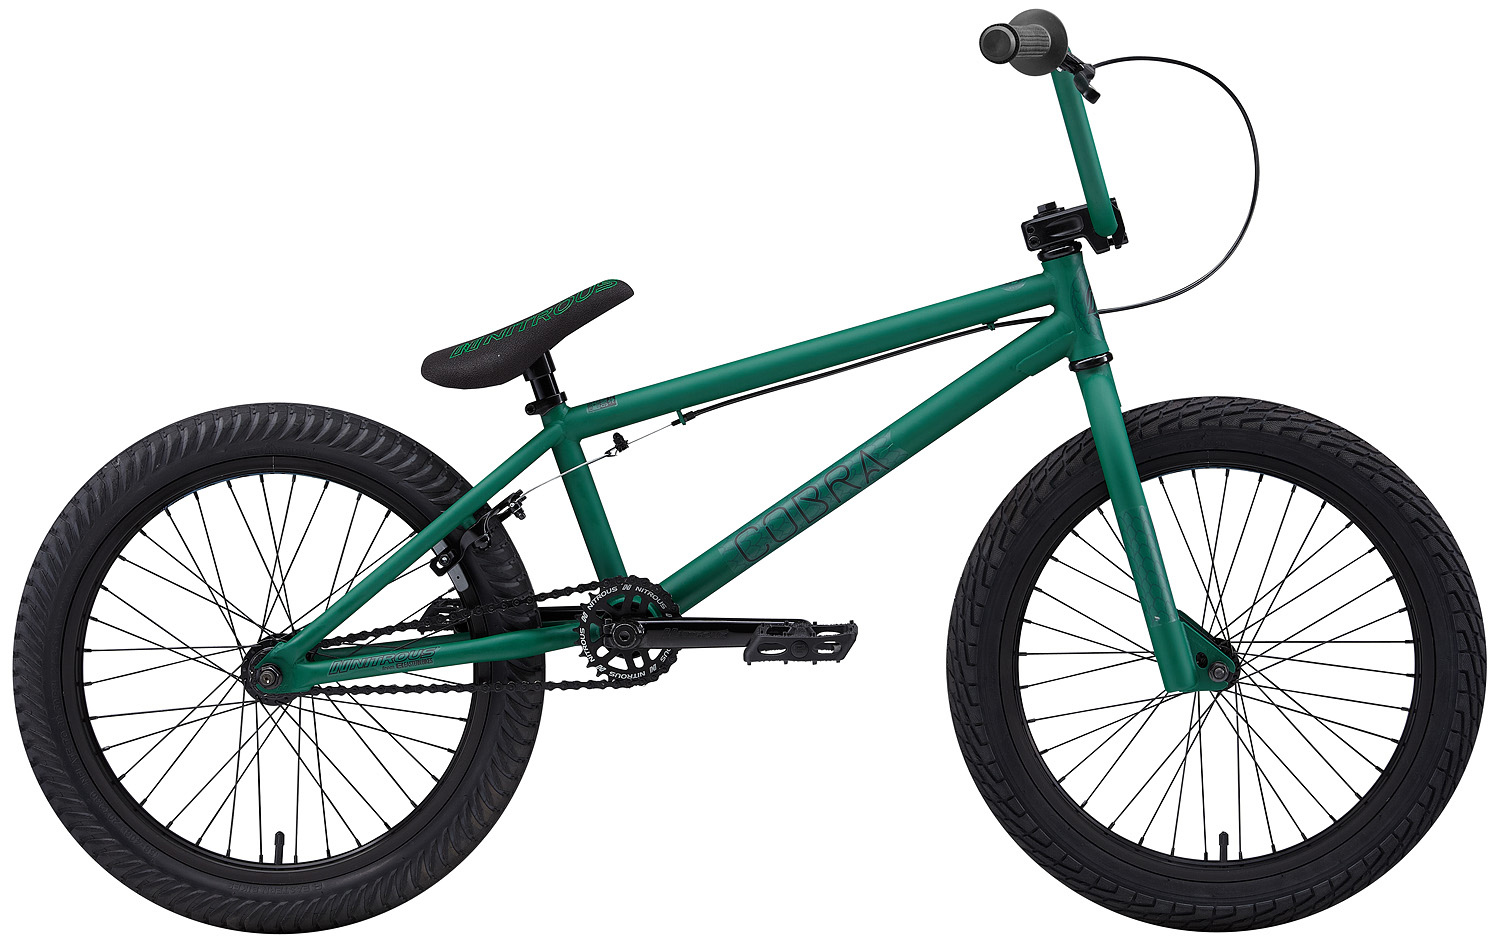 "BMX Key Features of the Nitrous Cobra BMX Bike: WEIGHT // 26.8 lbs. COLORS // Black/Black, Red/Black, Green/Black TOP TUBE SIZE // 20.25"" GEARING // 25/9 Micro-drive FRAME // Cobra Hi-Tensile Strength 1020 Steel Frame w/ lifetime upgrade policy** FORK // Cobra Hi-Tensile Strength 1020 Steel BARS // 8.0""x 28.5"" , 1? Upsweep, 12? Backsweep HEADSET // 1-1/8"" Aheadset BB // American Loose Ball Bearing PEDALS // Eastern Crown pedals GRIPS // Eastern Wiz Signature Grip STEM // Forged Alloy Front Load SPROCKET // 25T Steel w/ Nitrous Graphic CRANKS // Nitrous Shifter 175mm tubular chromoly heat-treated 3pc. cranks w/ 8 spline spindle SEAT // Nitrous Logo 1-Piece Seat/Alloy Post Combo TIRES // LHR Multi-Surface , 20"" x 2.20"" FRONT HUB // 36H 3/8"" Loose Ball Bearing REAR HUB // KT/Quando semi-sealed 36H cassette hub. 1-piece 9-tooth chromoly driver, hollow 14mm chromoly axle RIMS // Alloy 36 Hole REAR BRAKES // Forged Alloy U-Brake / Straight Cable / Forged Alloy lever, Designed for U-Brakes FREEWHEEL // 9T 1-Piece Chromoly Driver CHAIN // KMC Z510 SEAT CLAMP // Nitrous Locker Forged Alloy Clamp - $299.99"